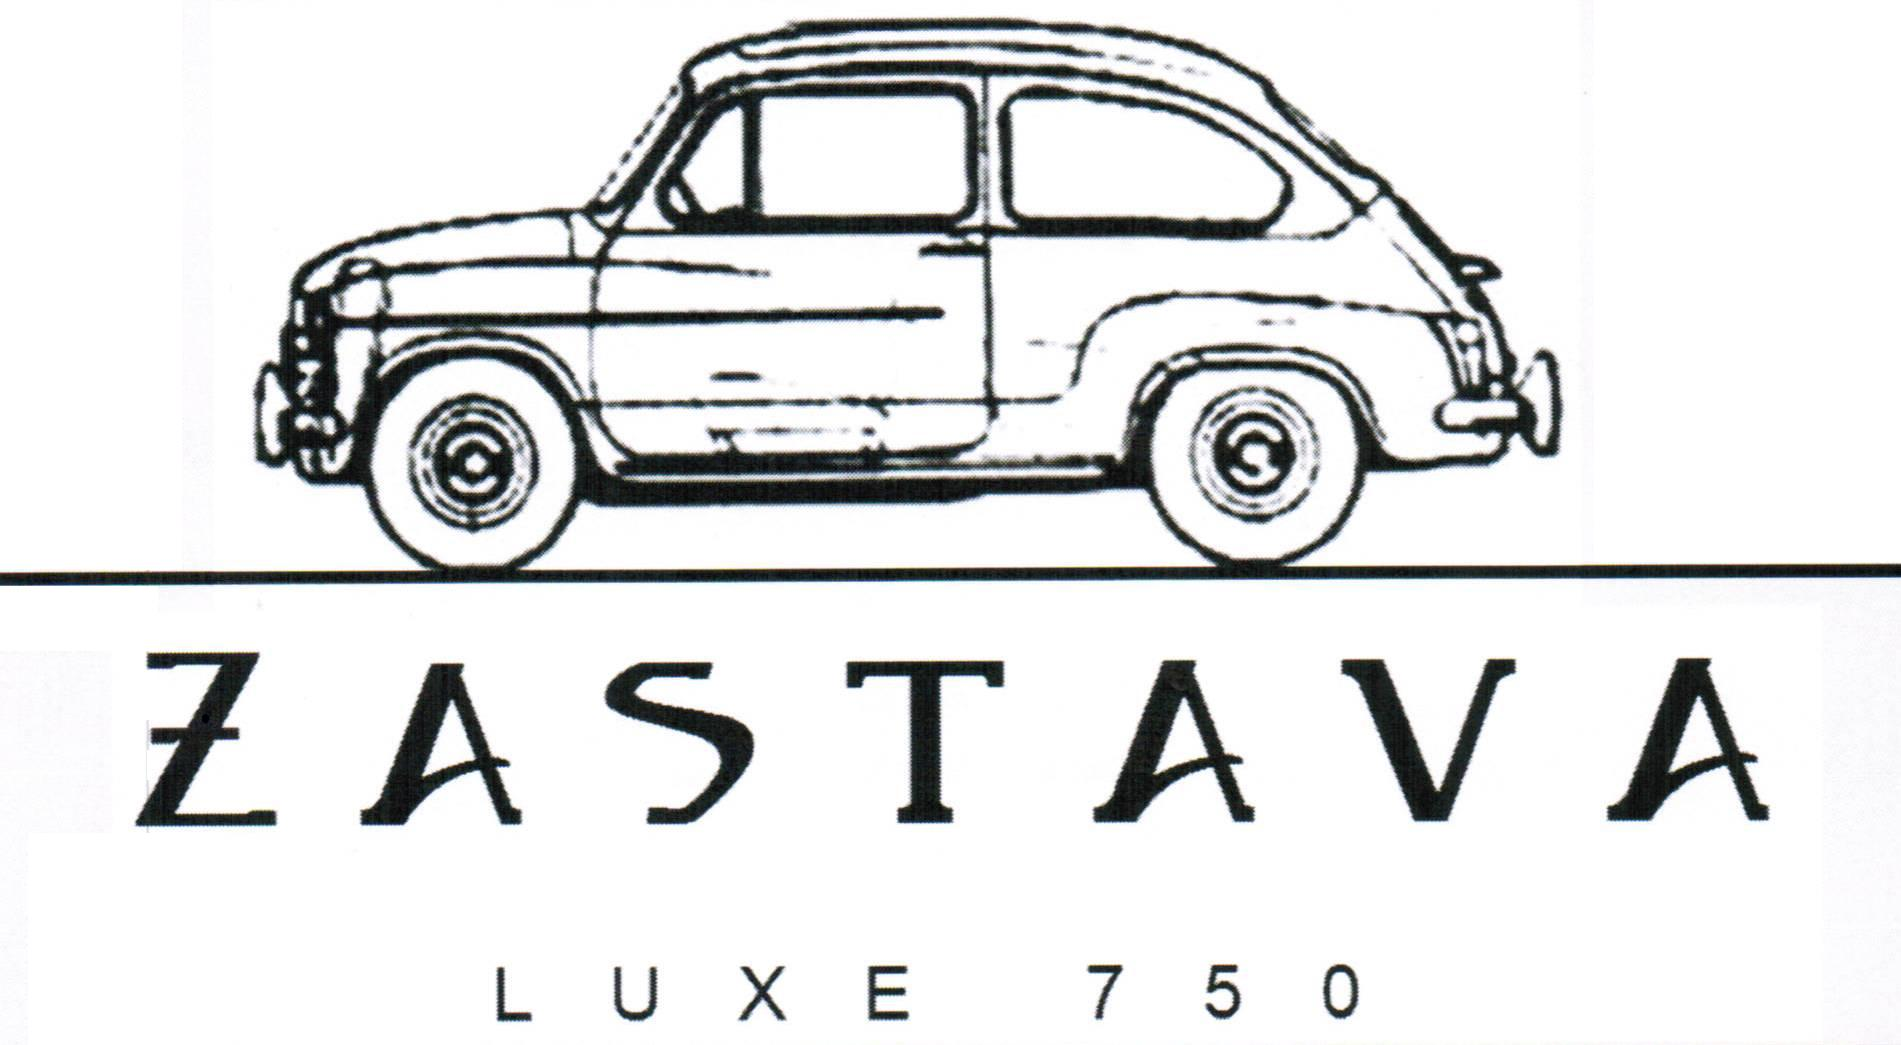 1000+ images about Zastava 750 on Pinterest.